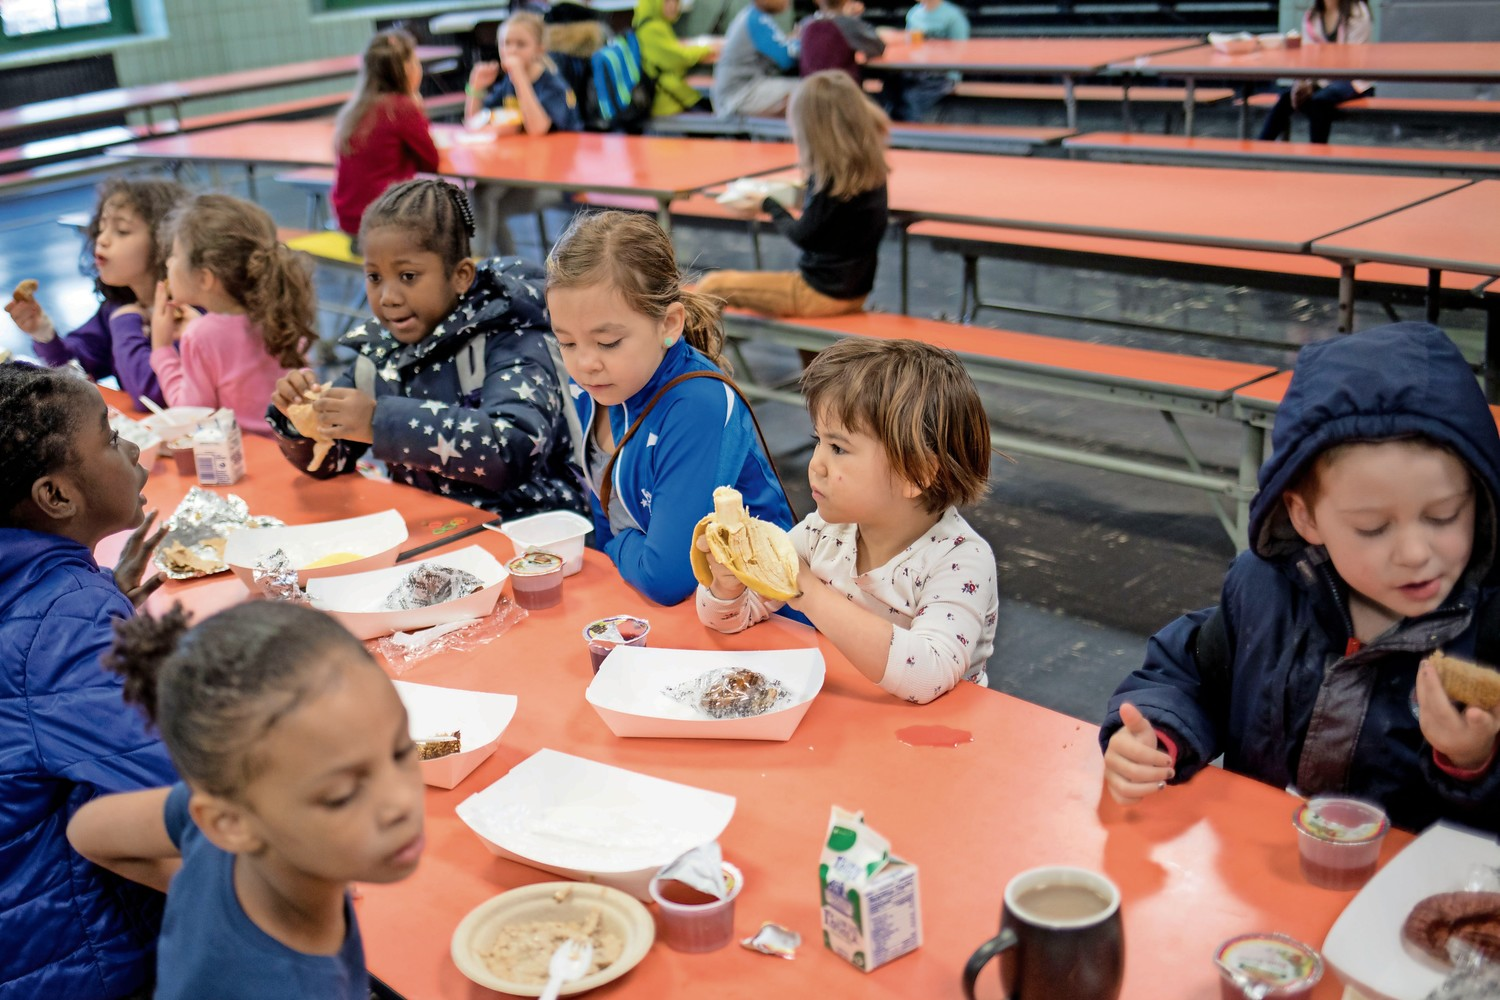 P.S. 24 students eat breakfast before class. Gov. Andrew Cuomo has proposed the No Student Goes Hungry initiative to incorporate breakfast into the regular school day, so that more kids get the chance to eat breakfast.